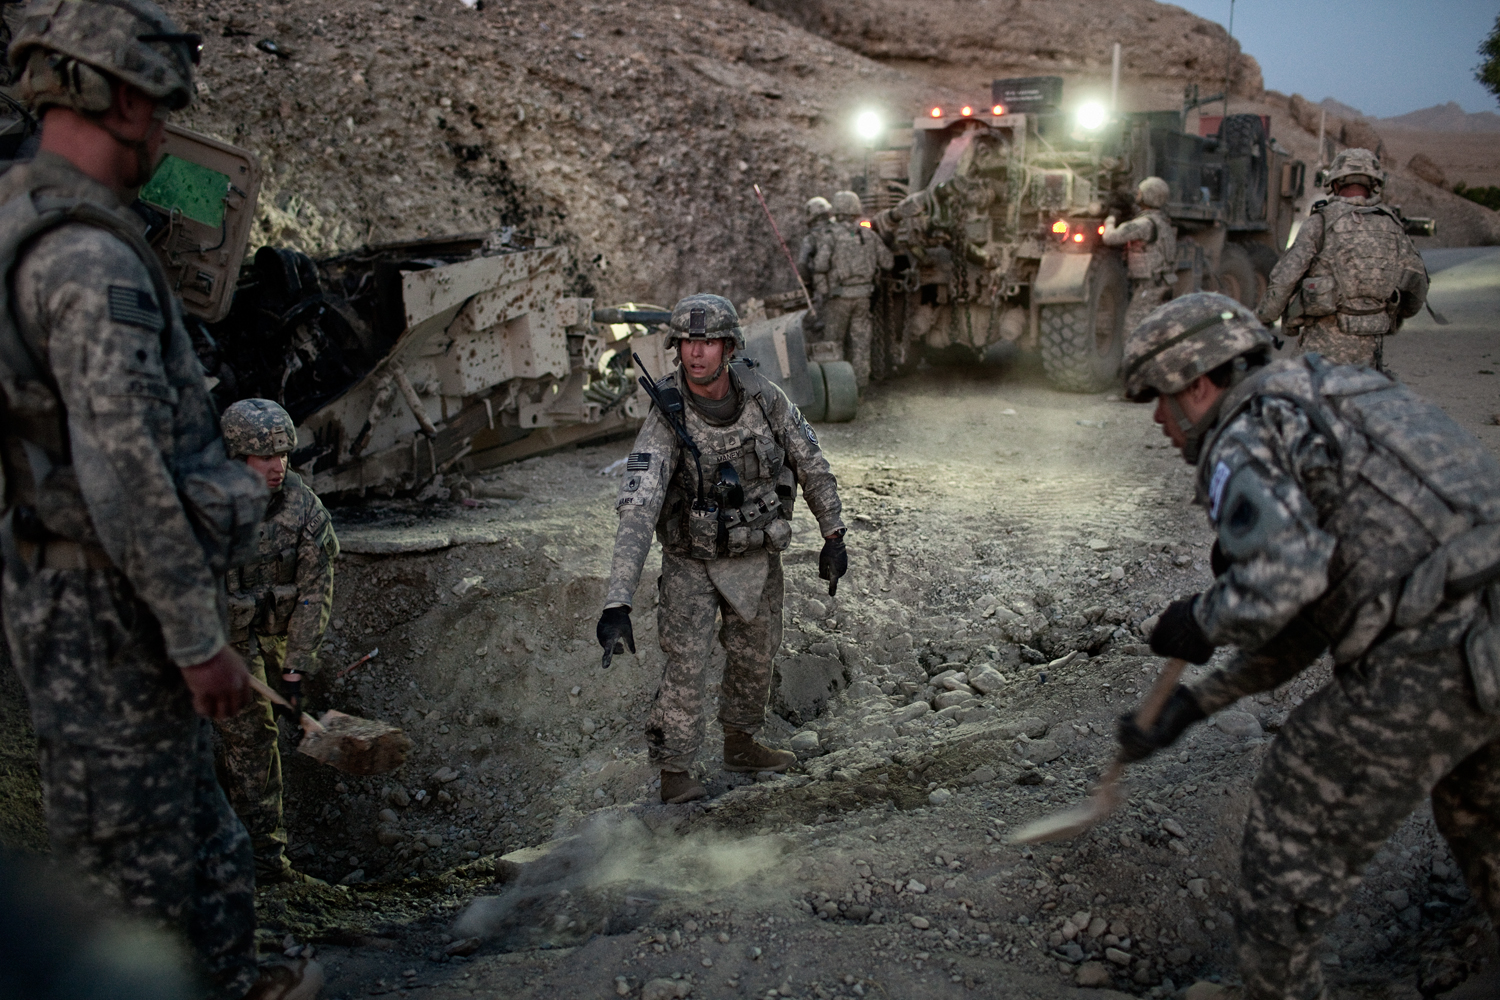 U.S. Army soldiers clear a road after animprovised explosive device attack on a vehicle in the Tangi Valley, Wardak Province, Afghanistan.